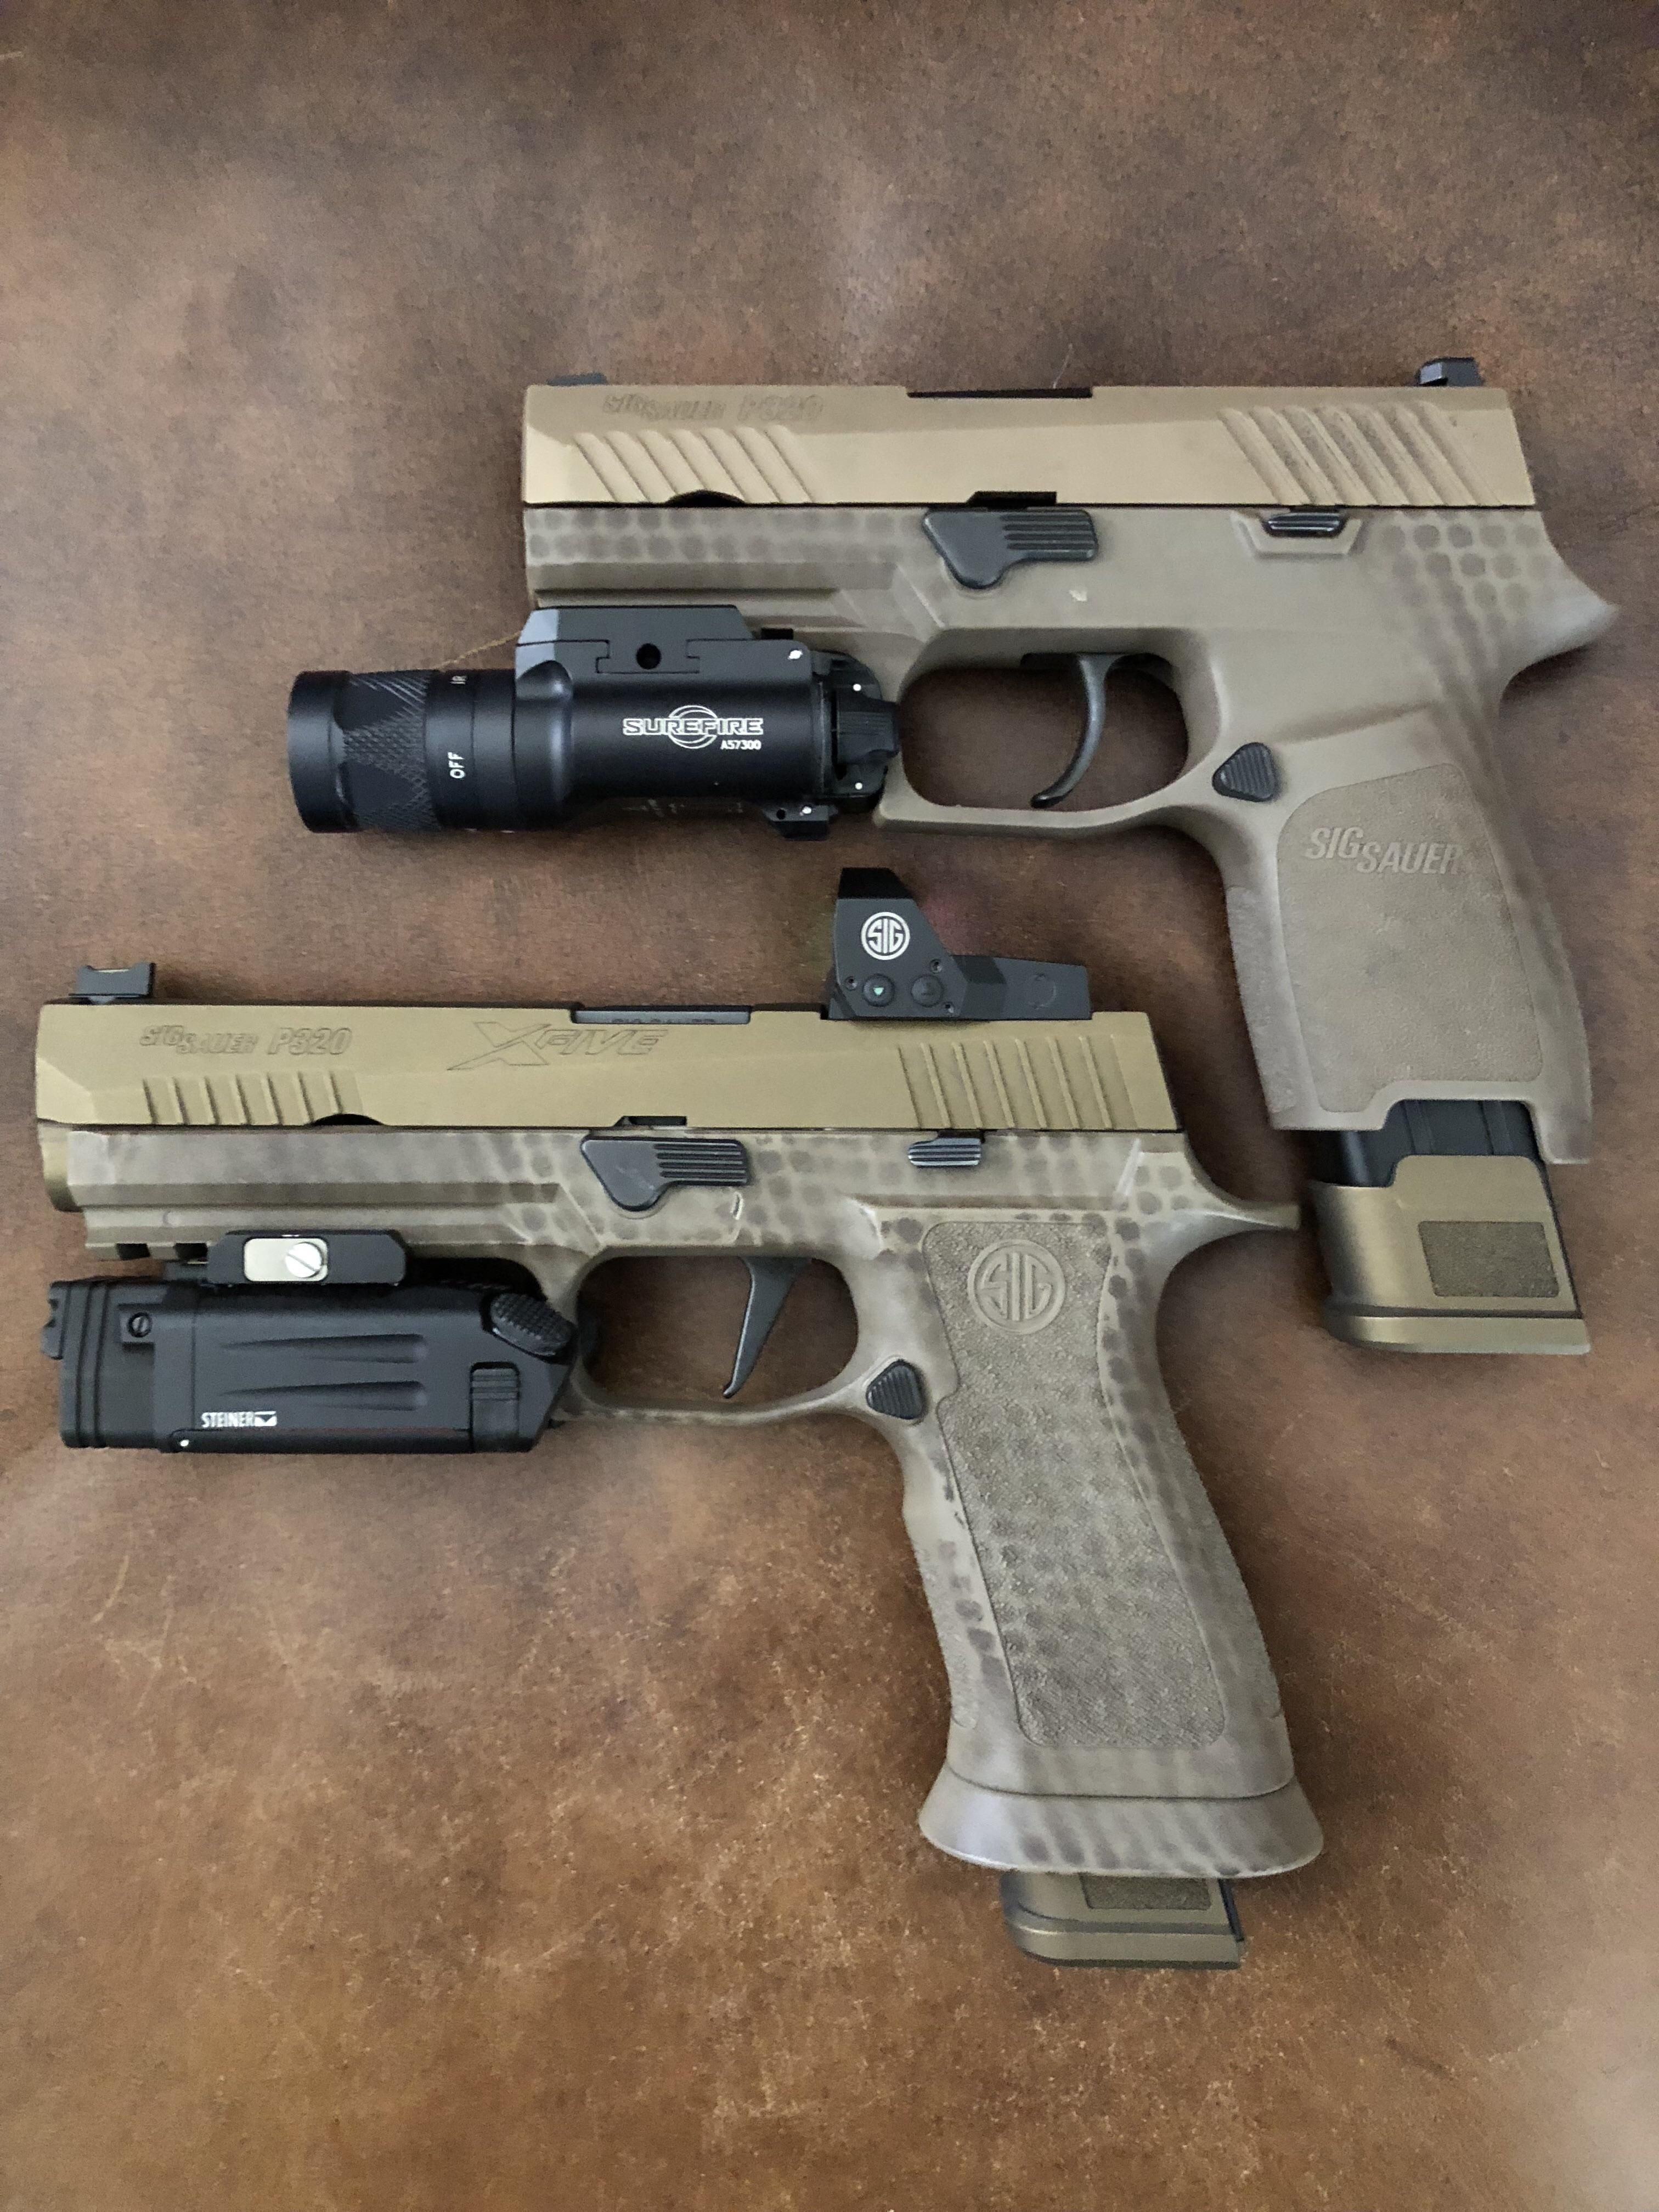 SIG P320 X5 And its backup  Tools of my professional tradecraft